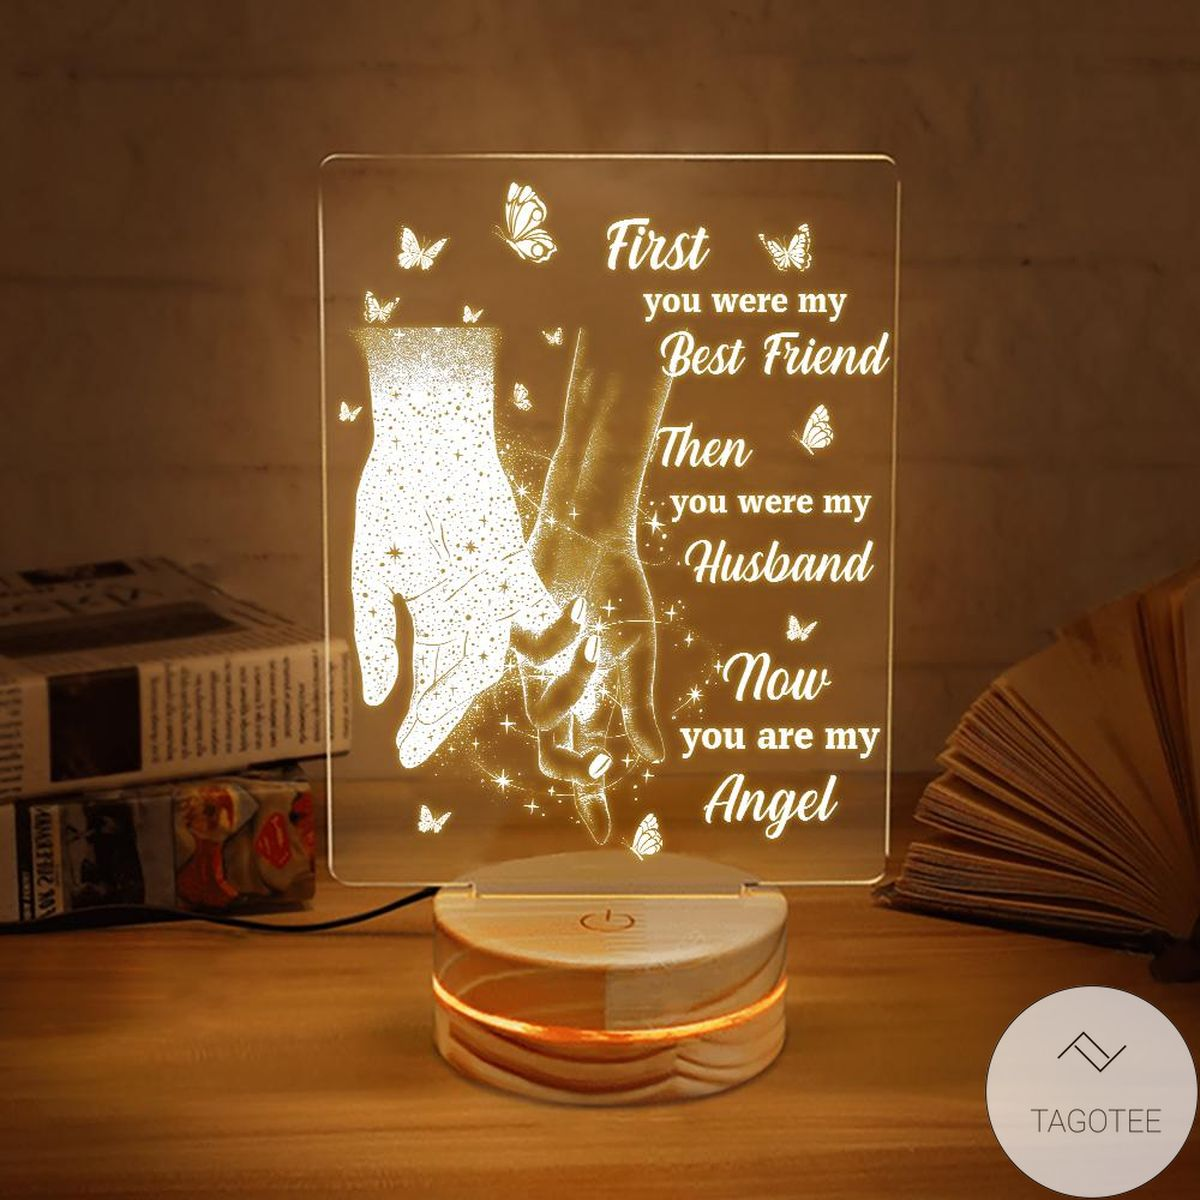 First You Were My Best Friend Then You Were My Husband Now You Are My Angel UV LED Lamp, Night Light Lamps